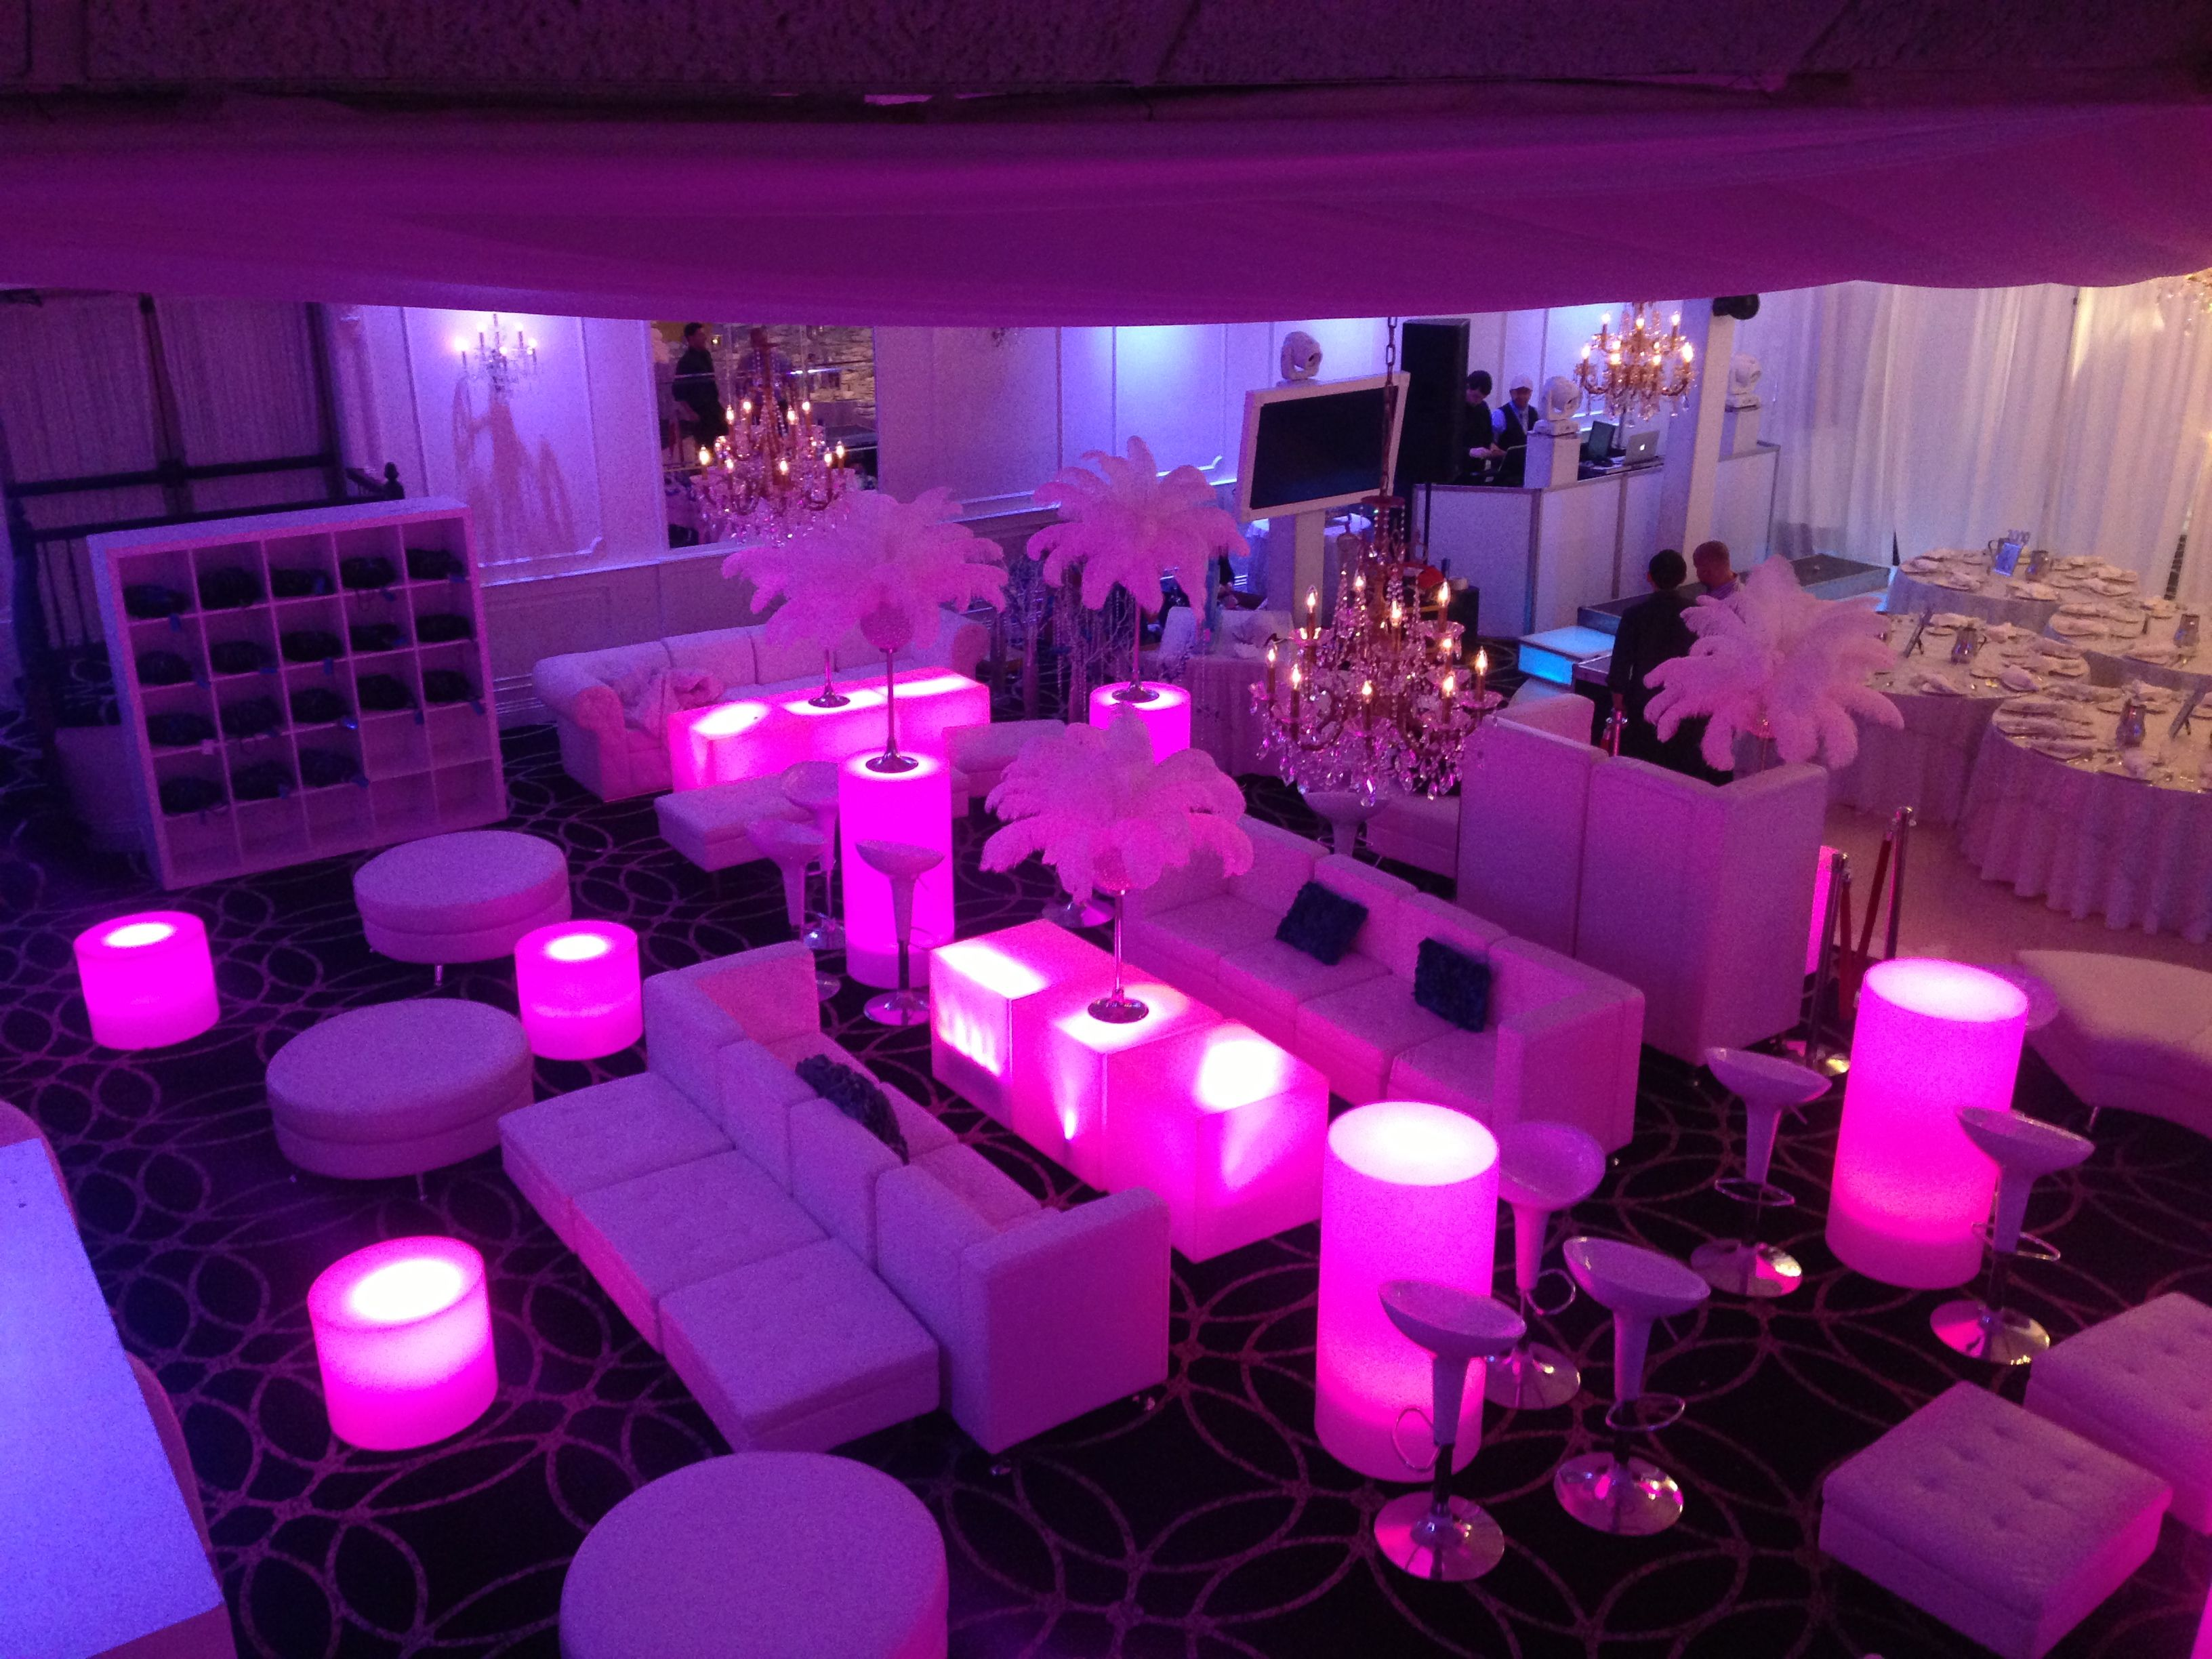 Batmitzvah Lounge Furniture Rentals New Jersey Gramercy Hazlet